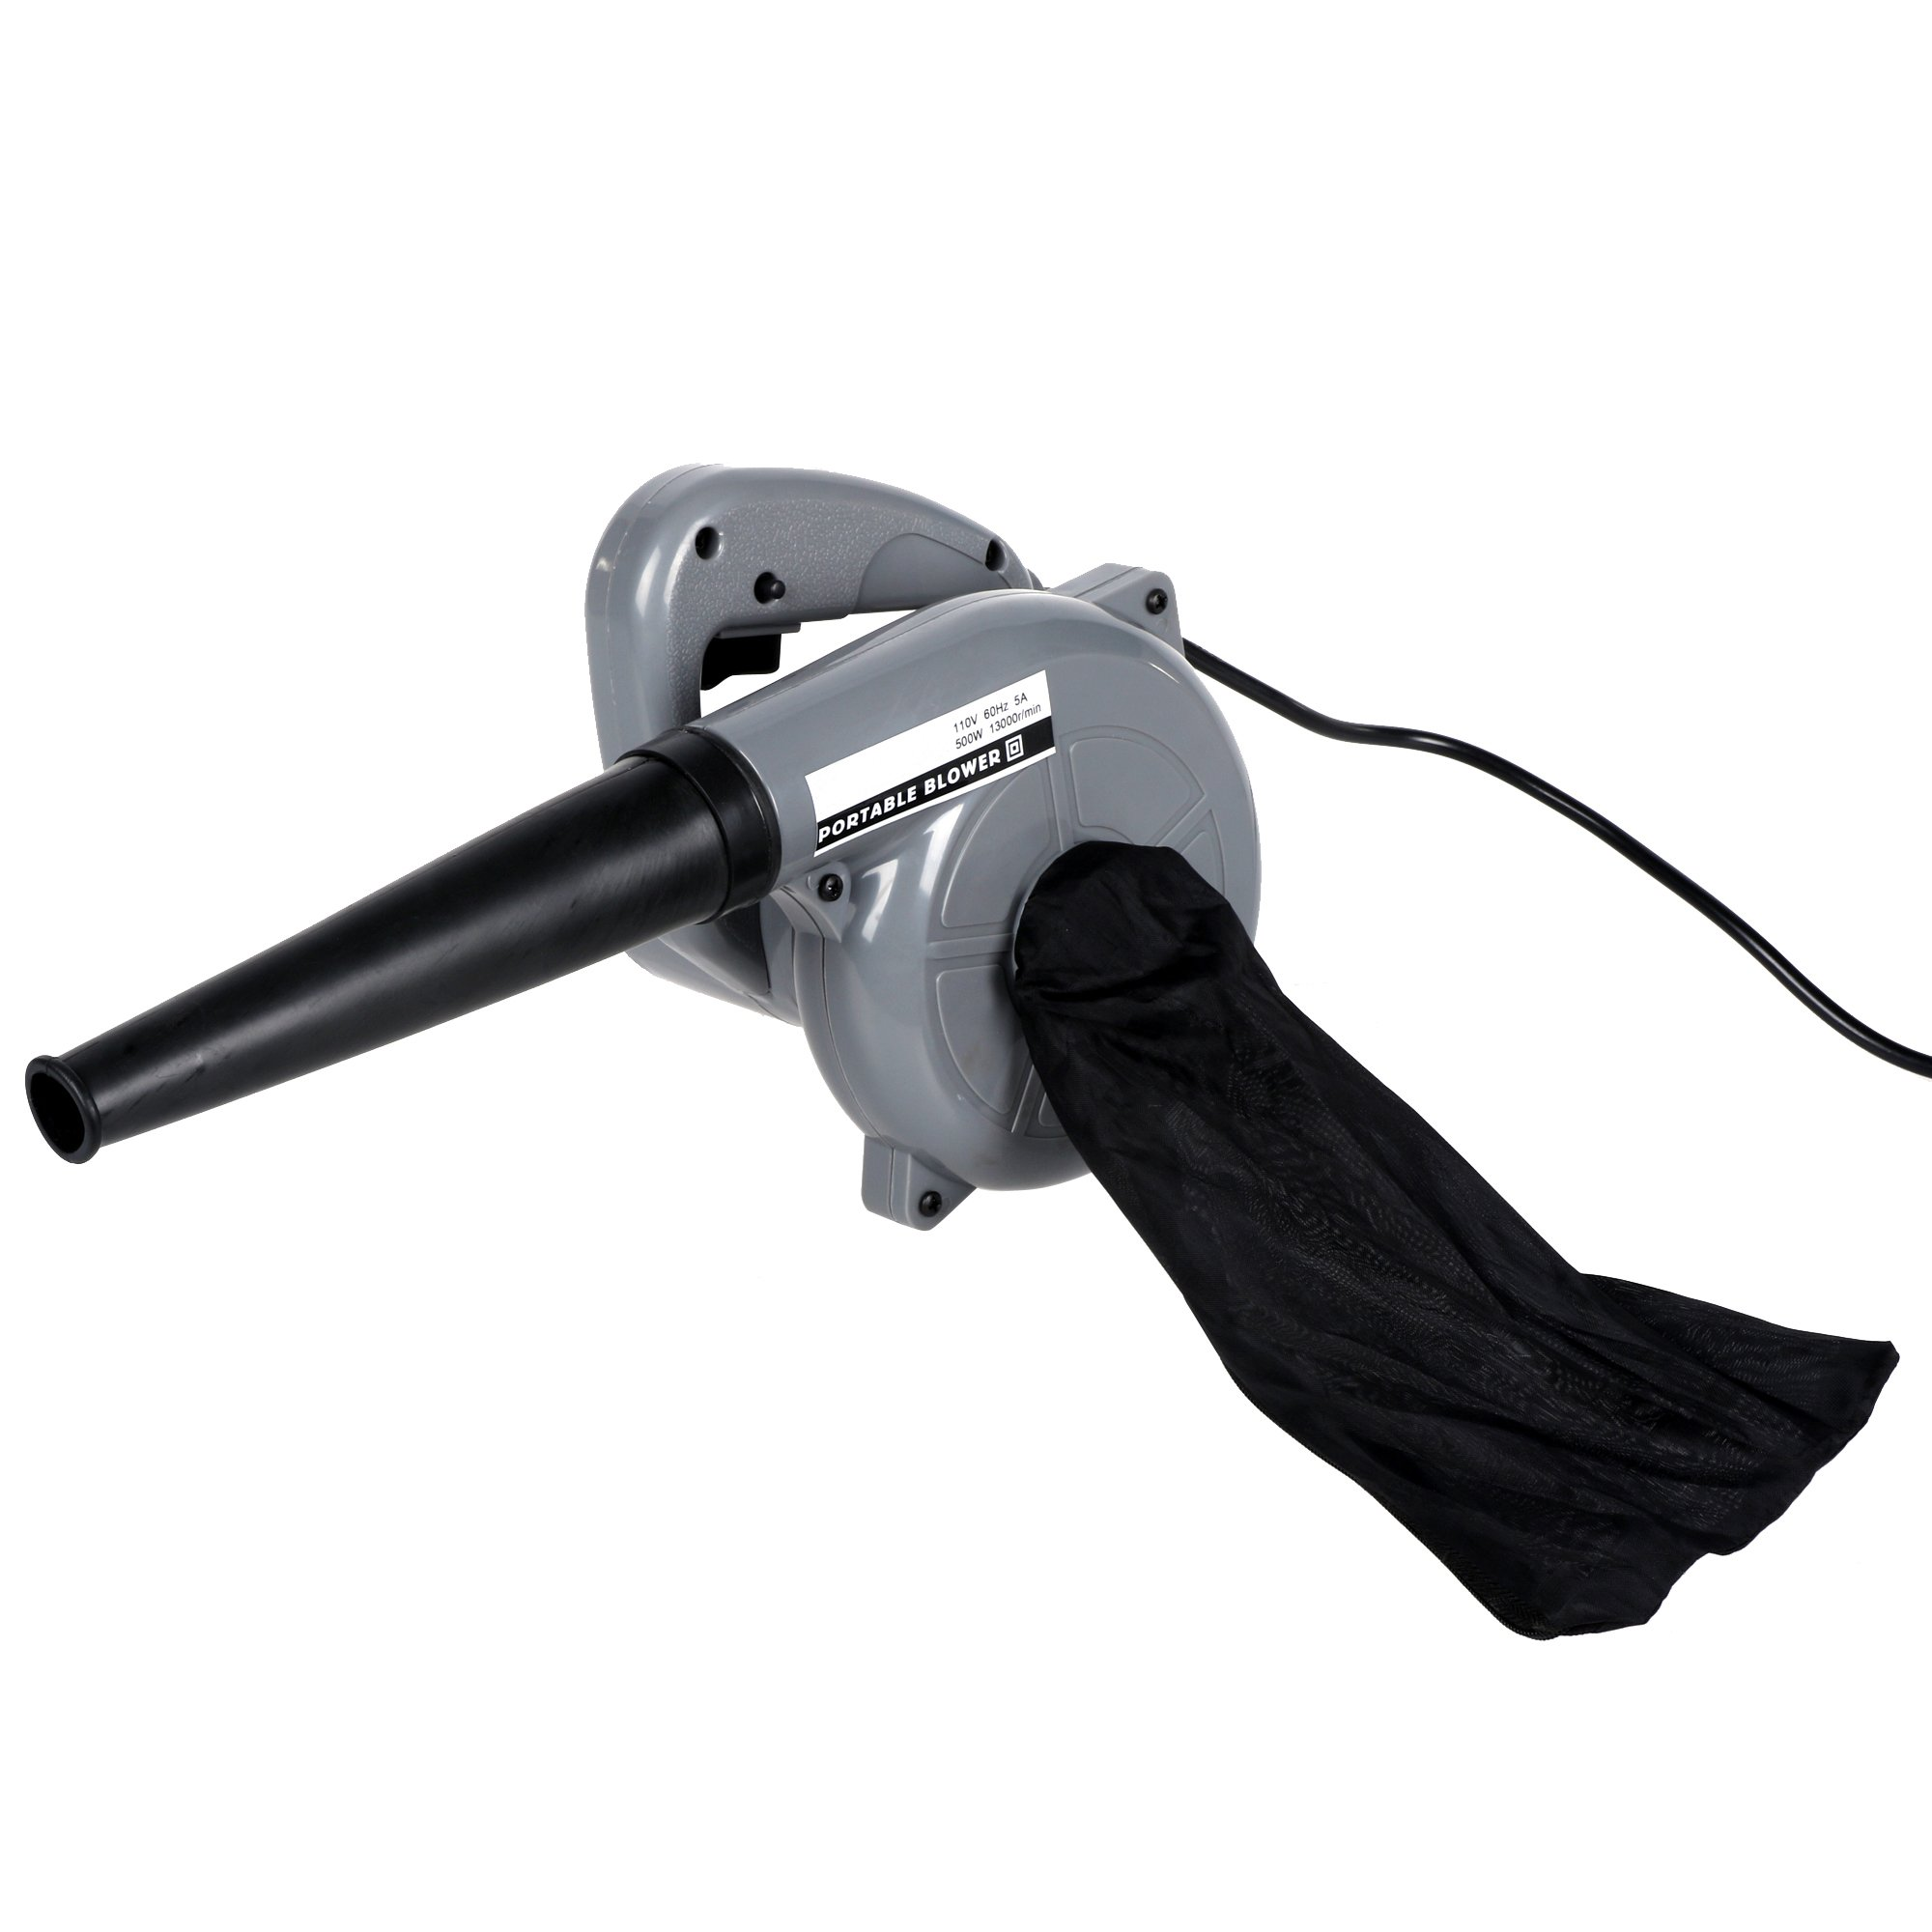 Etuoji 500W Powerful Electric Handheld Dust Leaf Blower Compact Electric Blower and Vacuum Cleaner